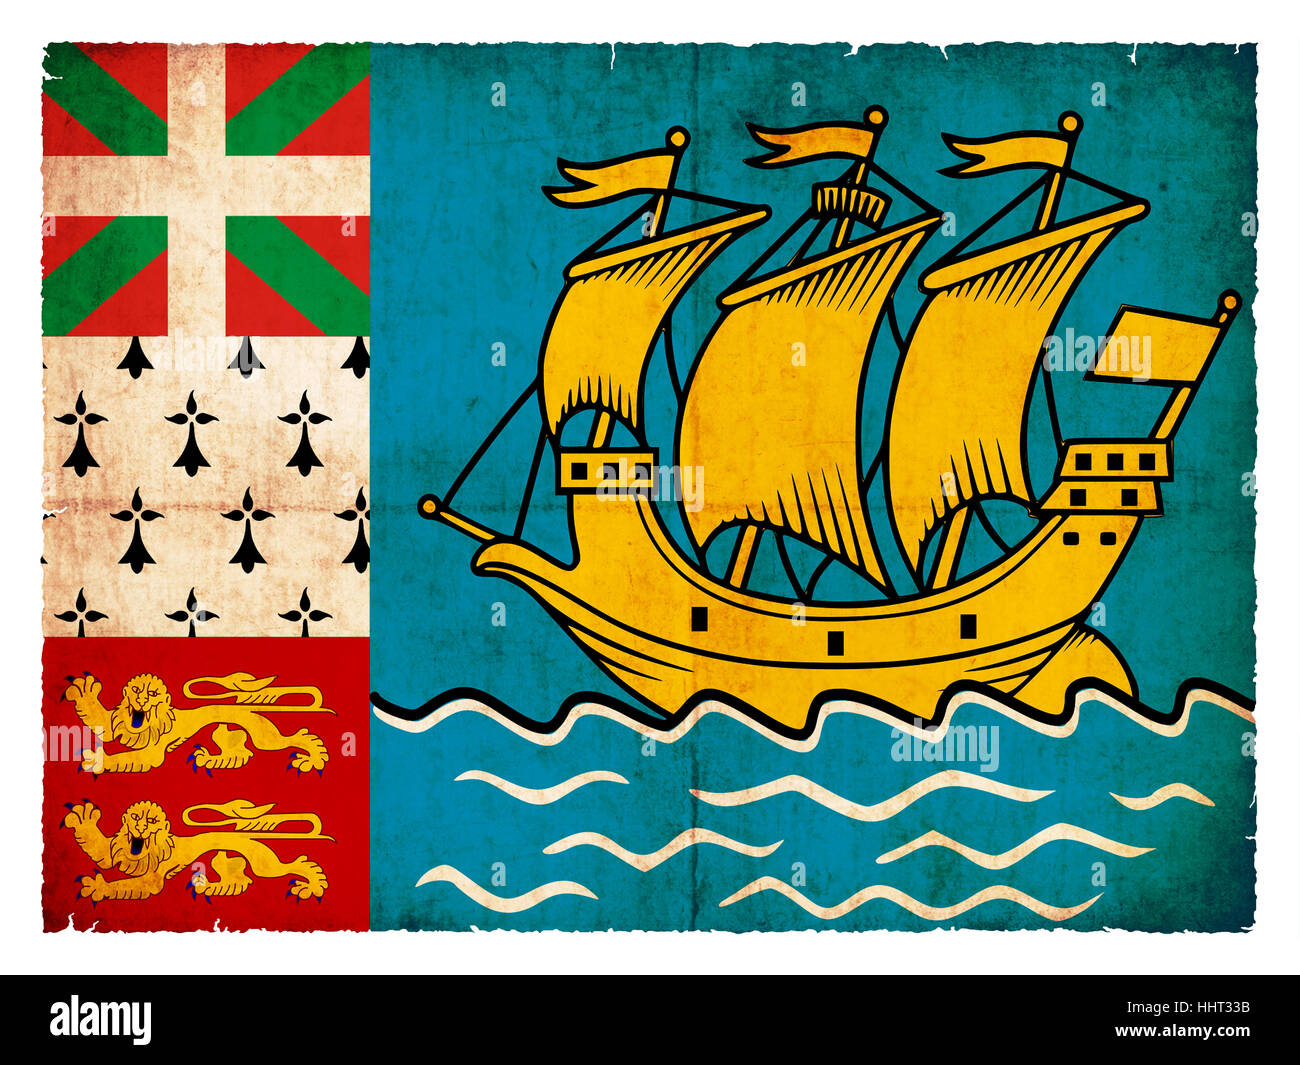 grunge flag saint-pierre and miquelon (canadian) - Stock Image